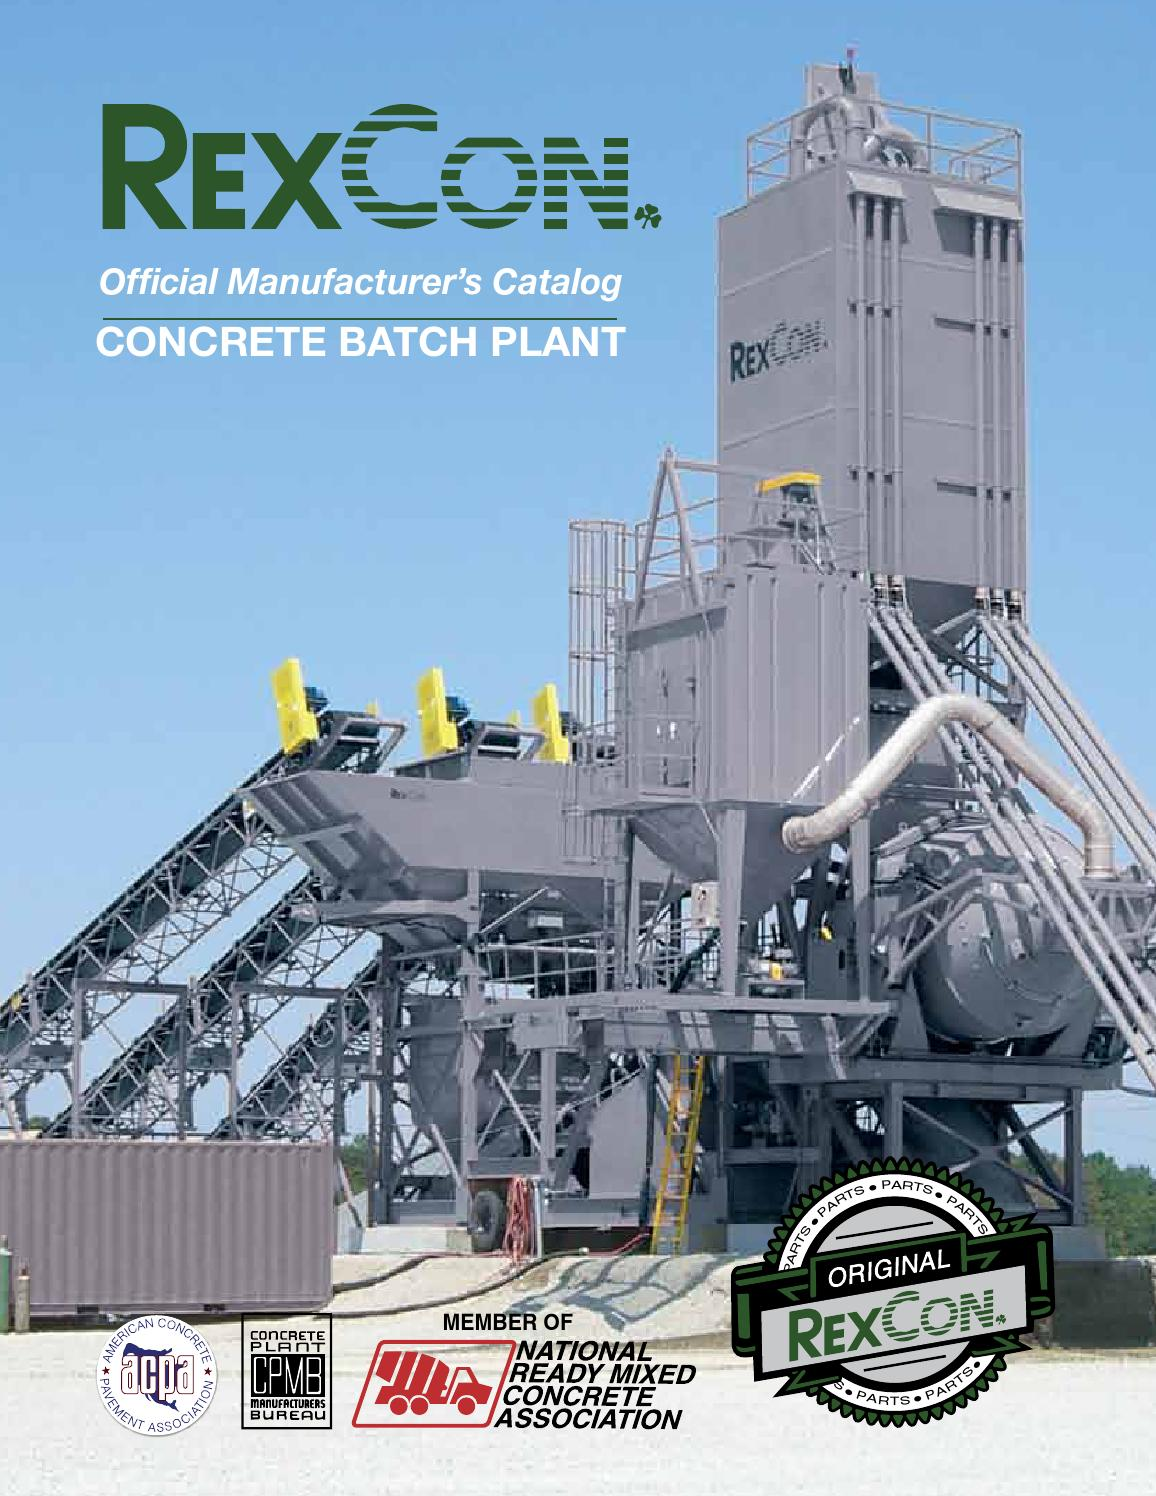 Factory Manufacturer Parts Rexcon Official Manufacturer S Parts Book By The Scan Group